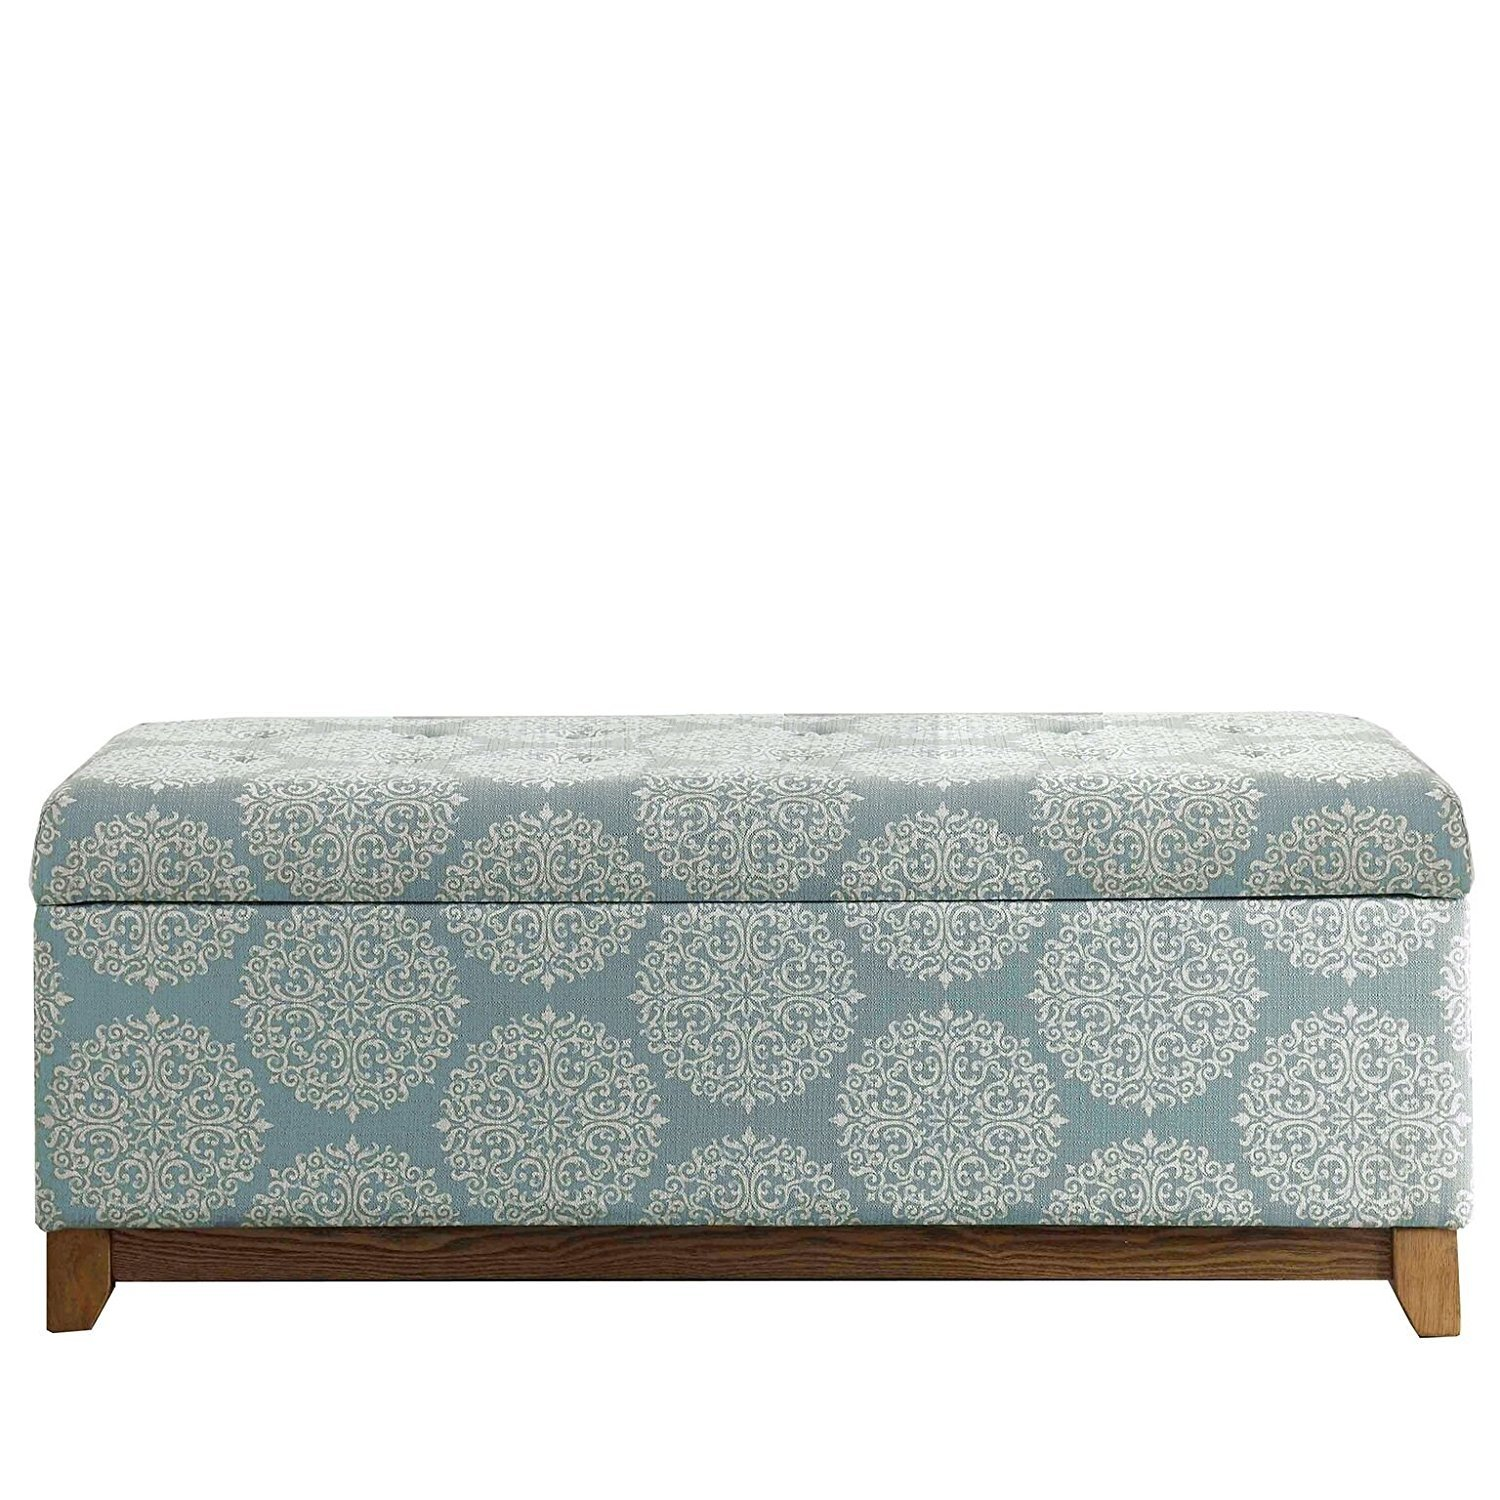 Kinfine Large Upholstered Storage Bench with Hinged Lid, Brown Medallion by Kinfine